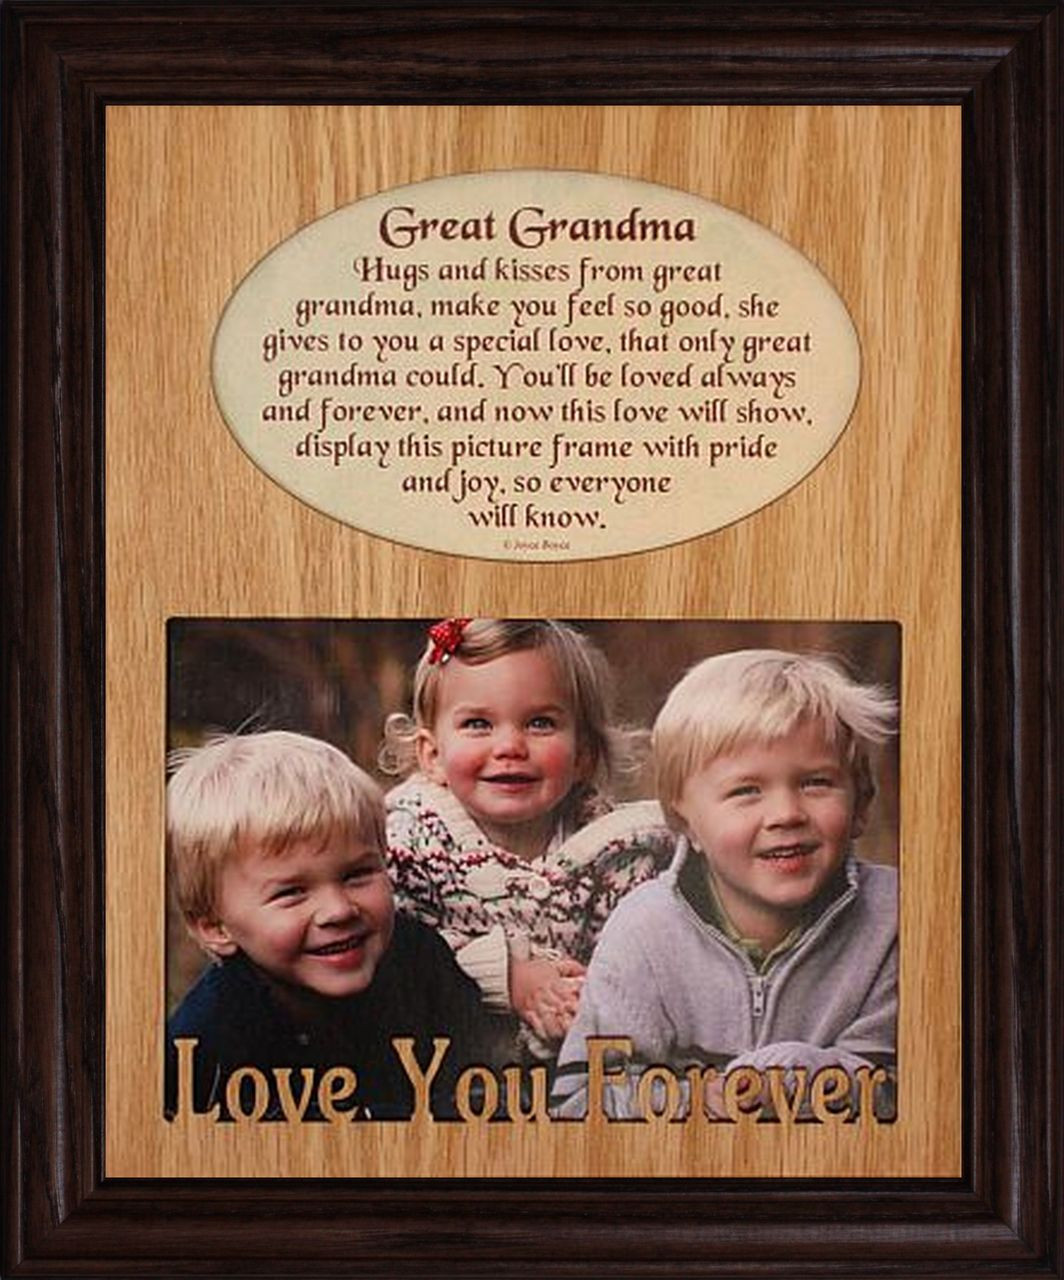 8x10 GREAT GRANDMA Laser Photo & Poetry Frame ~ Holds a Landscape ...